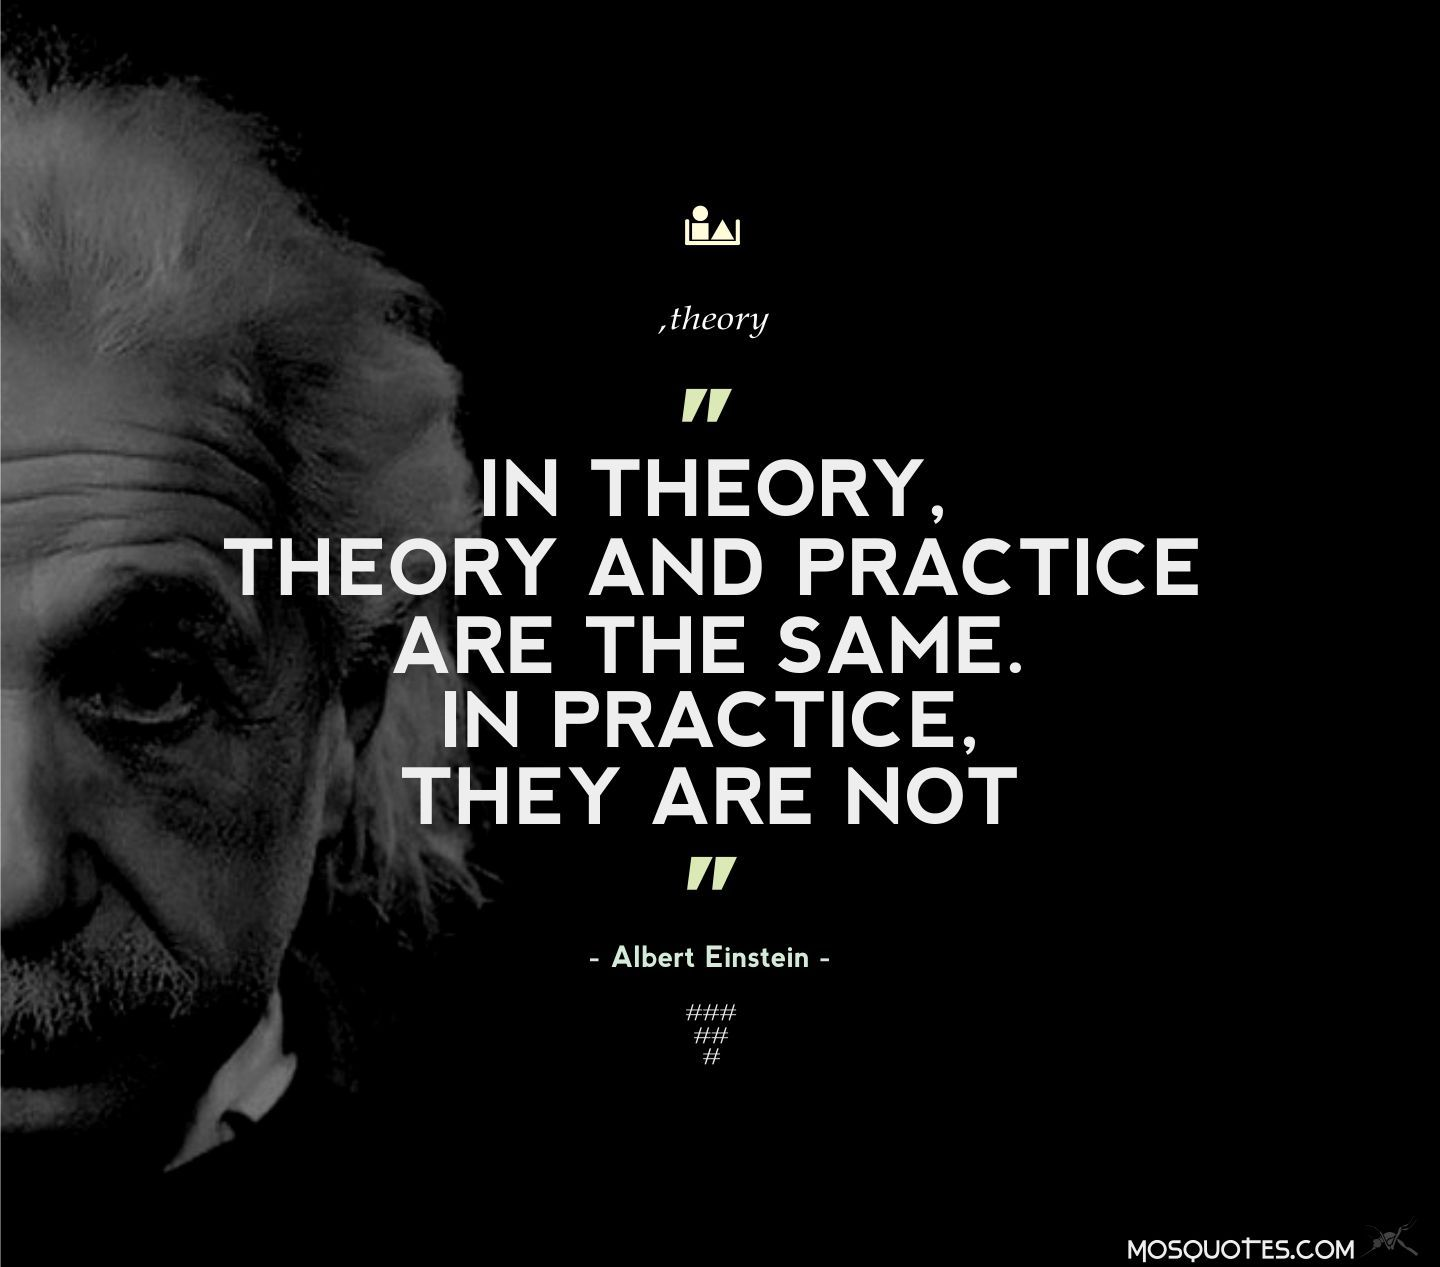 Albert Einstein Life Quotes In Theory Theory And Practice Are The